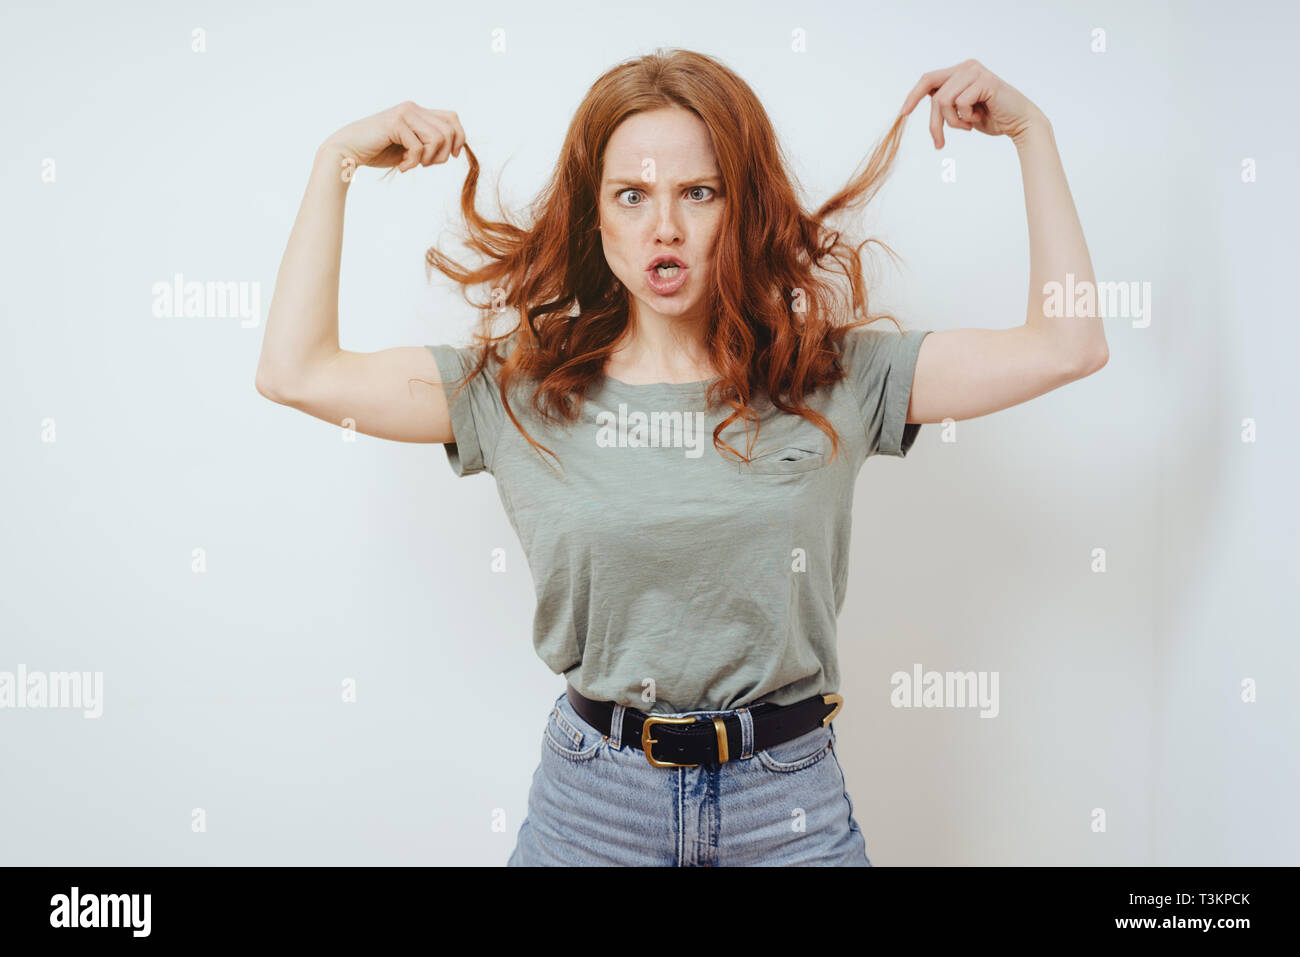 Frustrated young woman pulling at her long red hair snarling and look cross eyed at the camera in front of a white wall with copy space - Stock Image